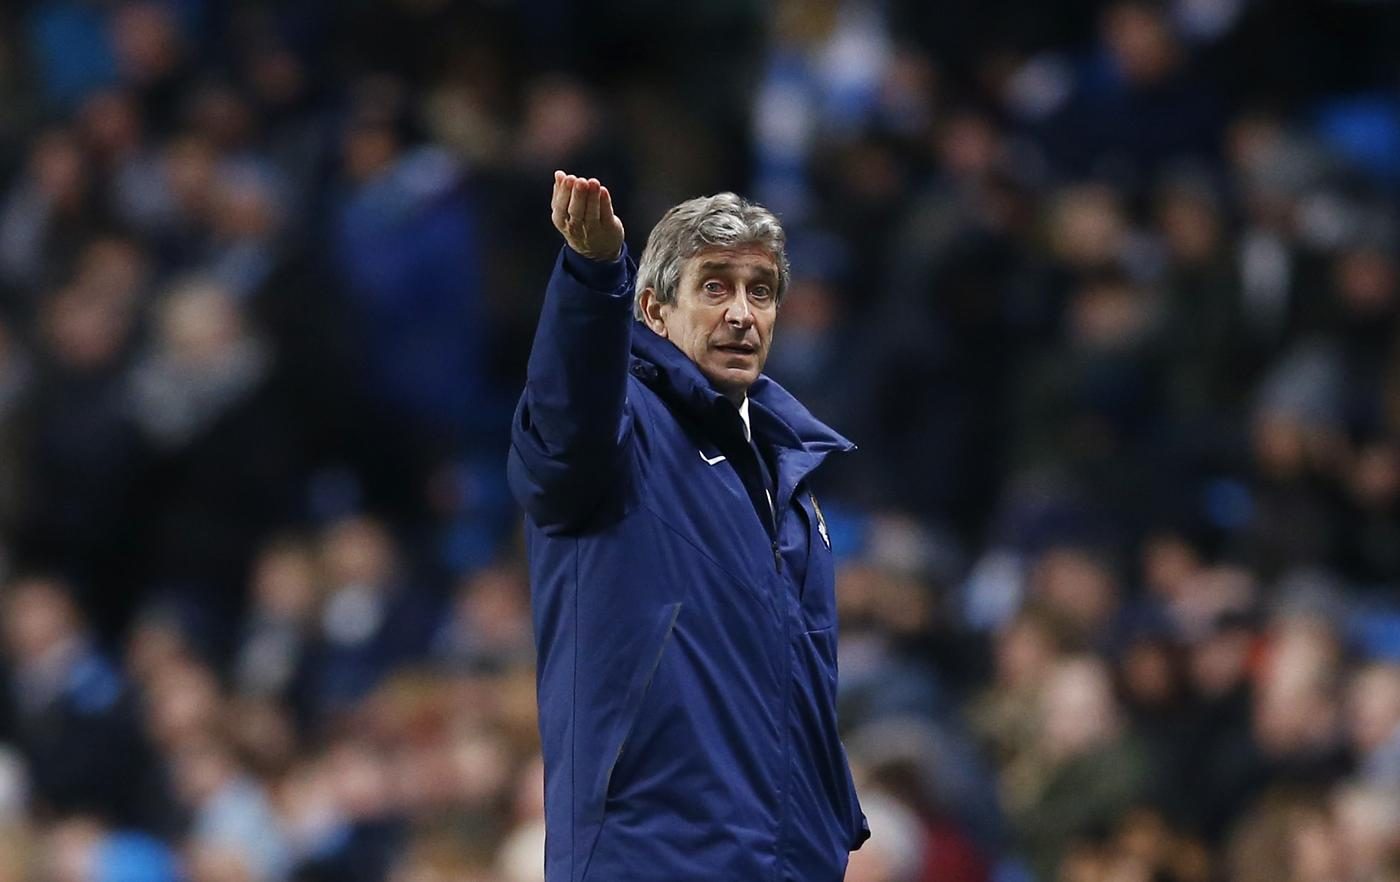 Colin Murray: Manuel Pellegrini may be charming but he seems to be on borrowed time at Manchester City